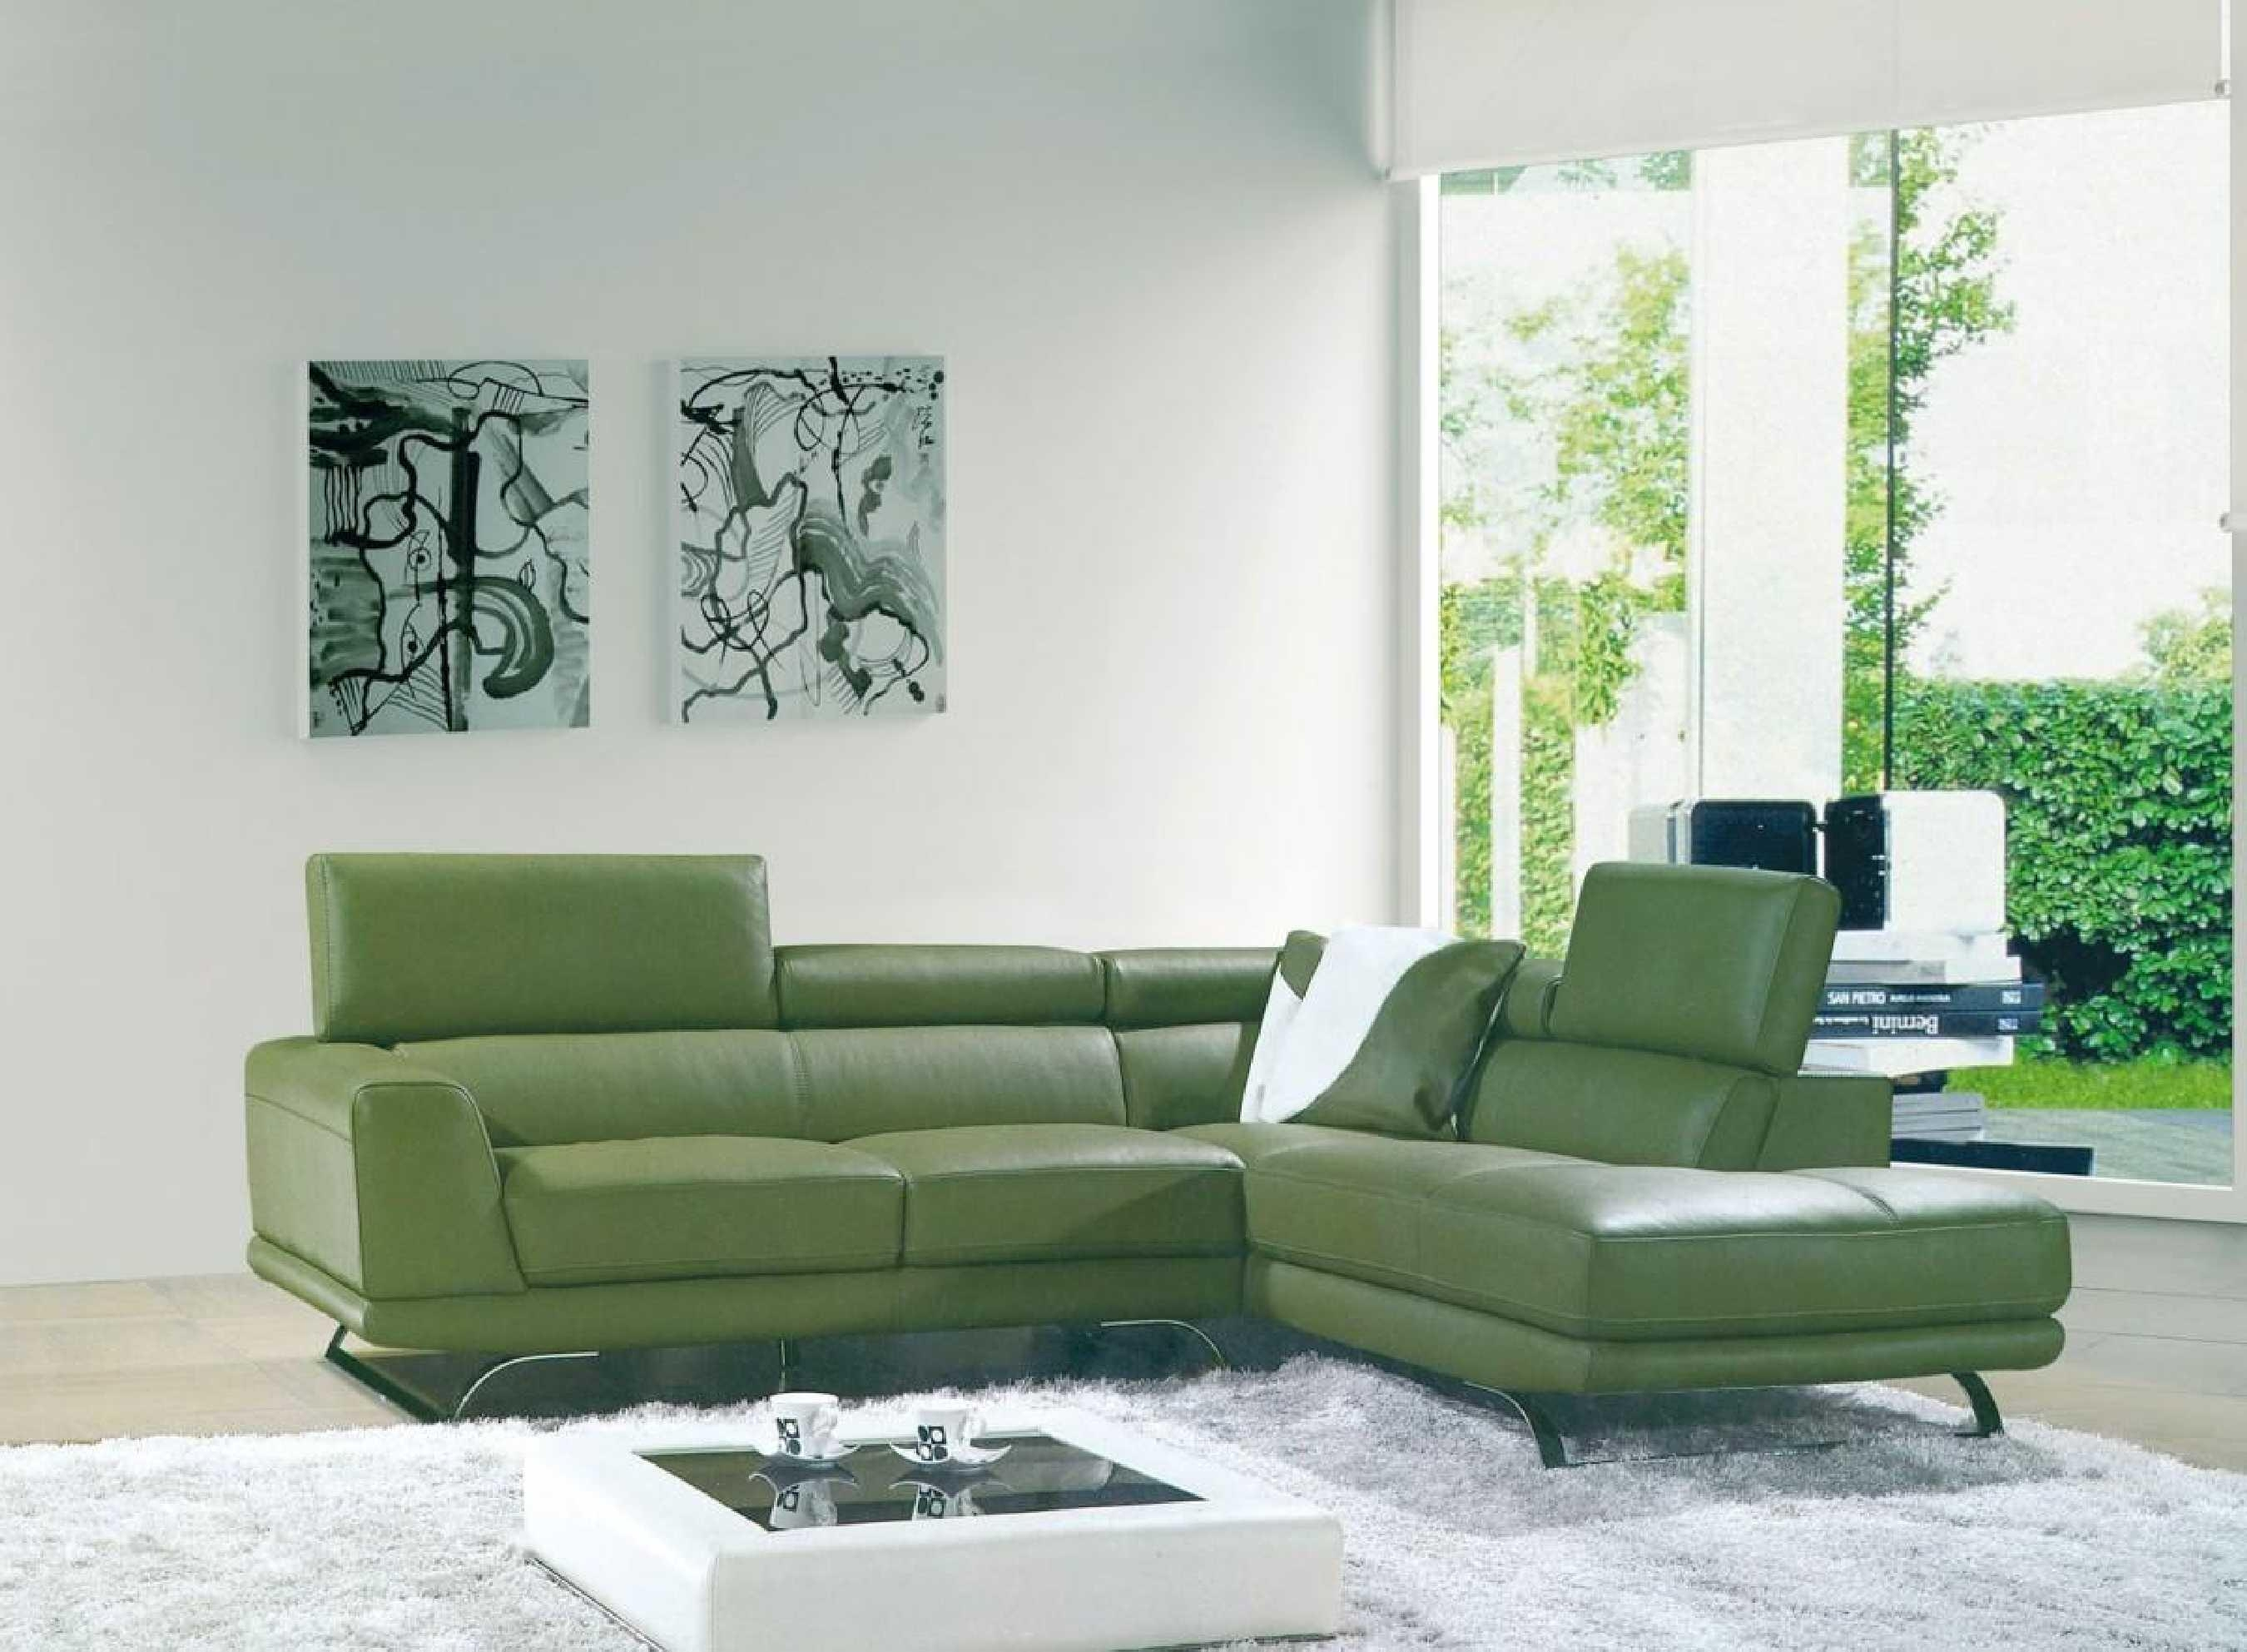 2017 16 Green Leather Sofa On Vig Furniture 8012 Green Bonded Inside Green Leather Sectional Sofas (Image 2 of 20)